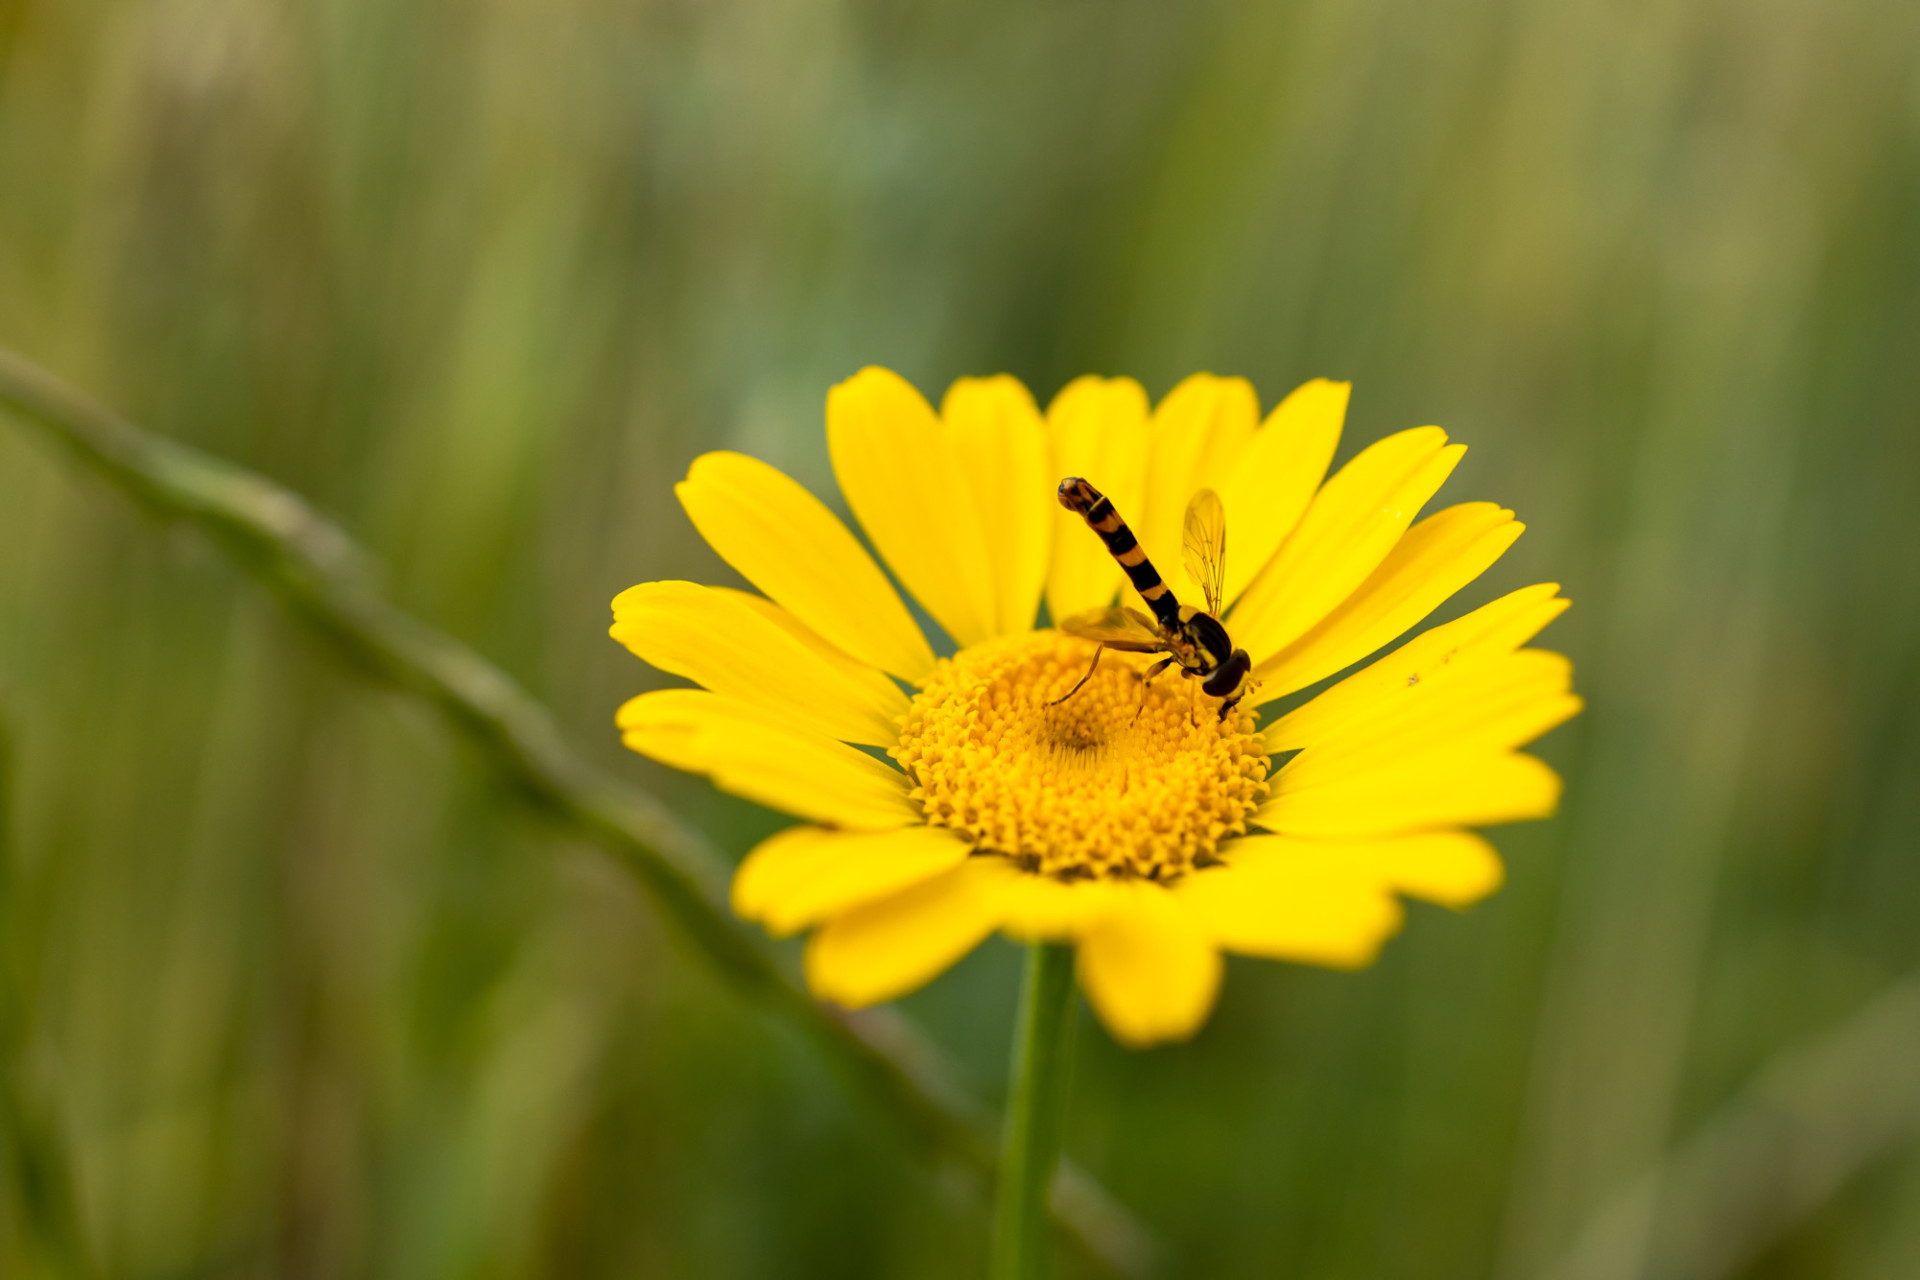 Hoverfly collecting nectar from a yellow chamomile flower